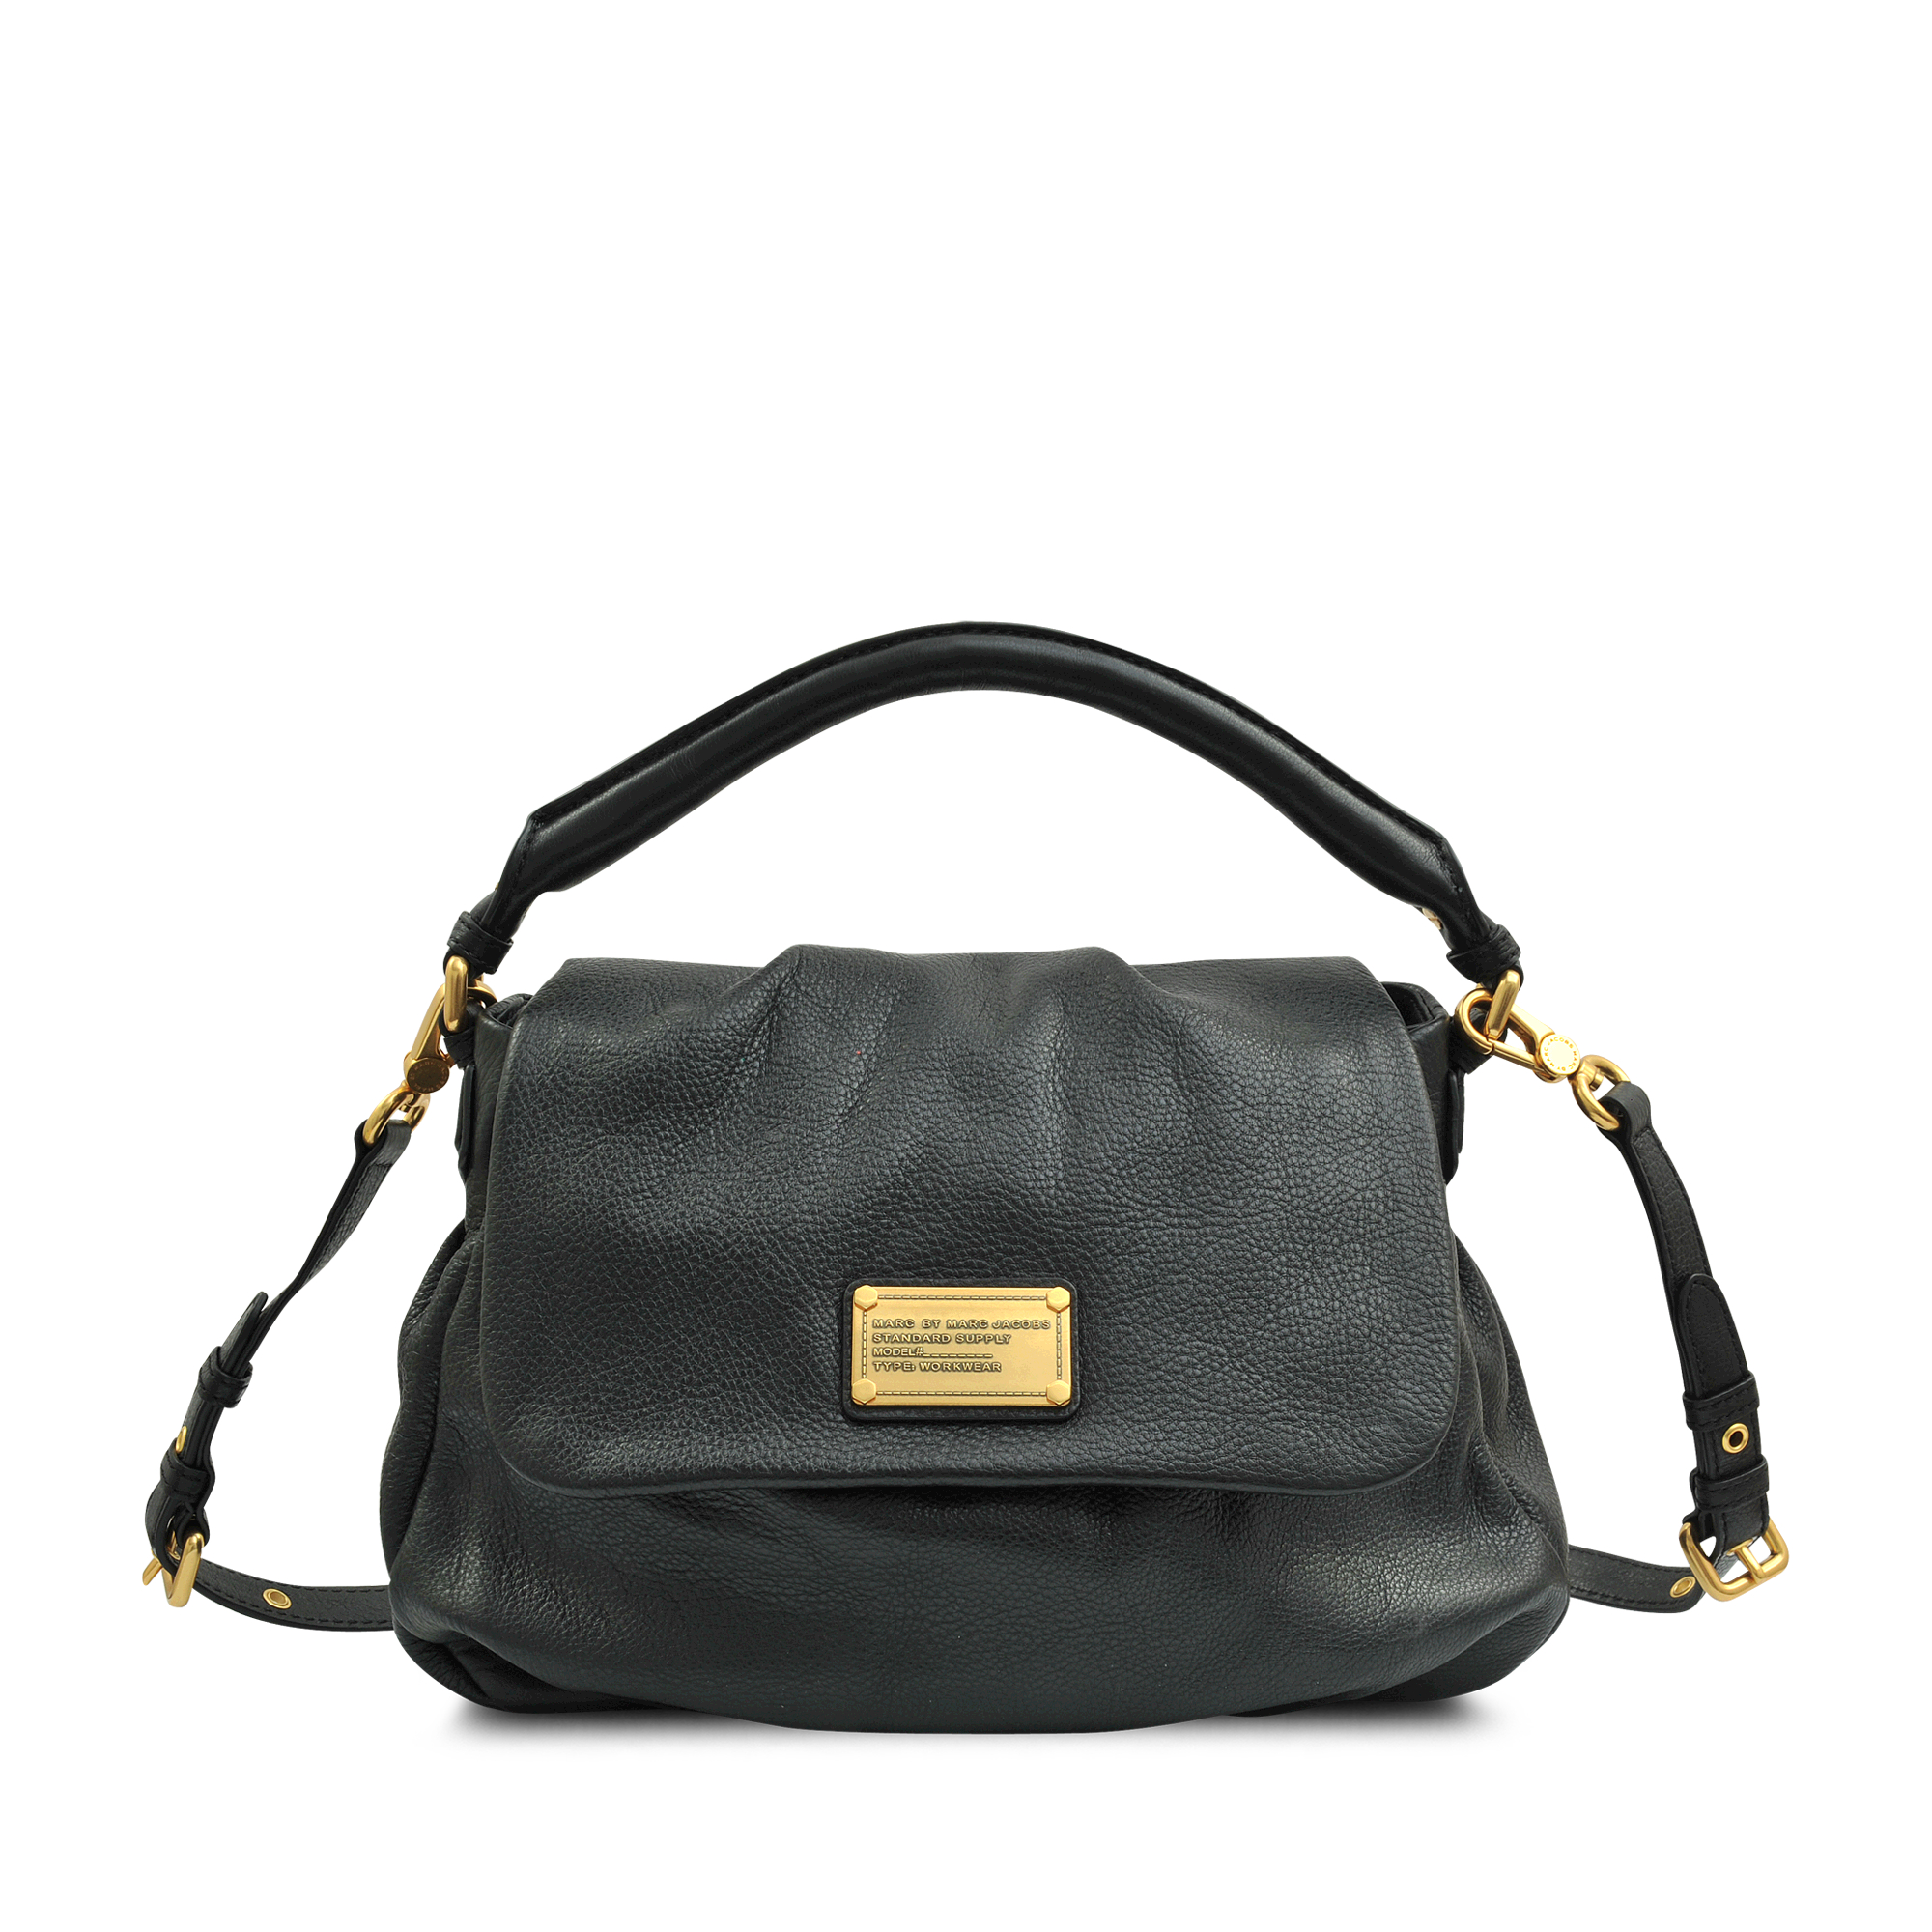 marc by marc jacobs lil ukita classic q hobo bag in black lyst